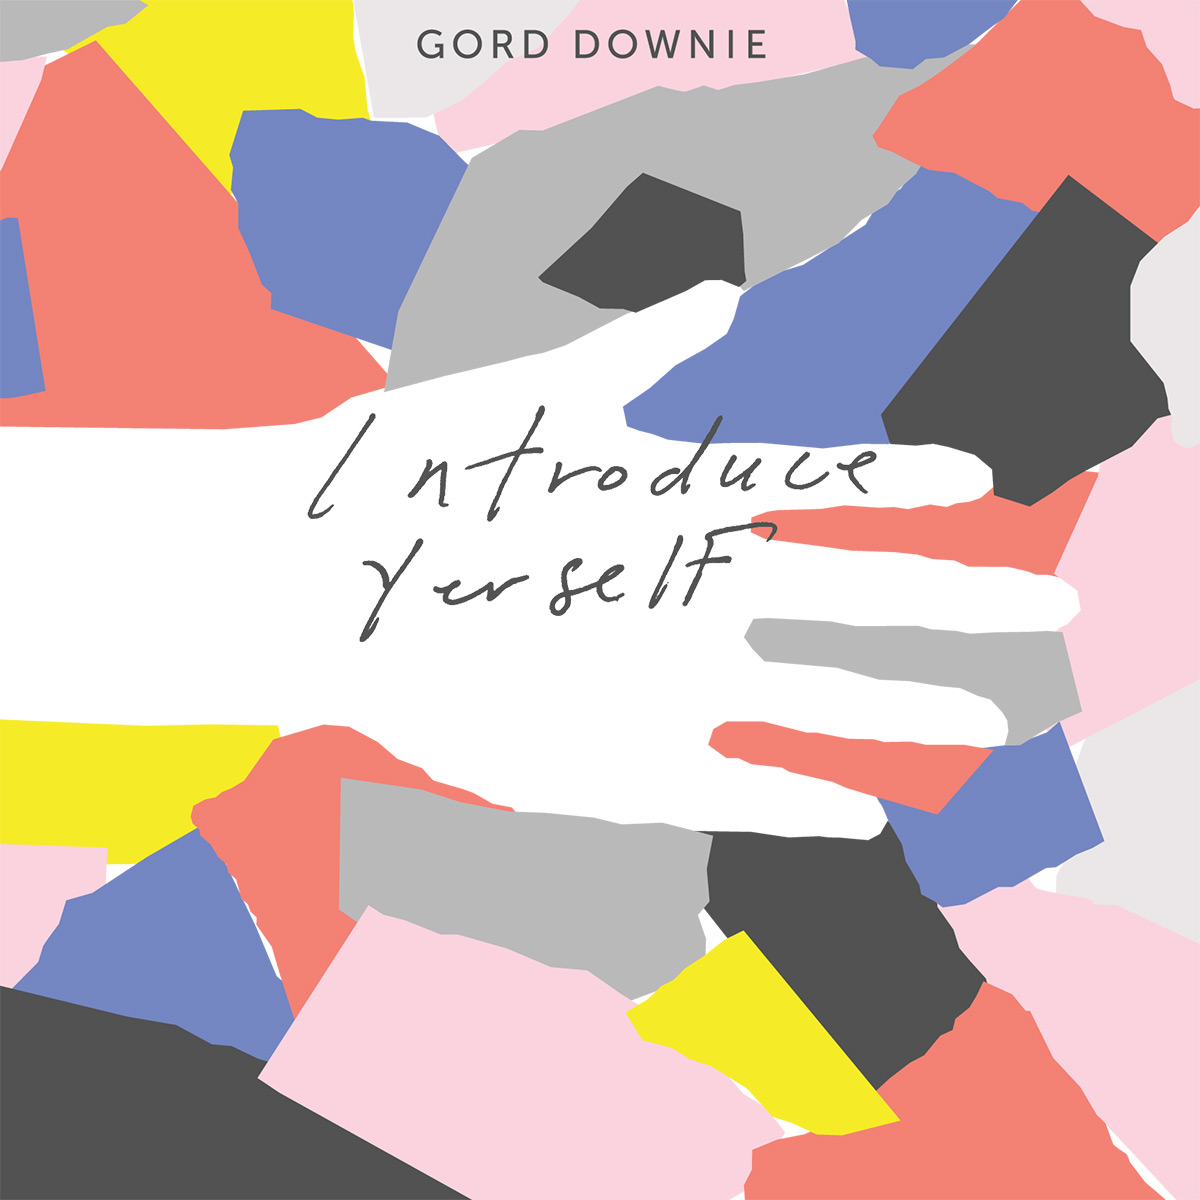 'Introduce Yerself' by Gord Downie: Our review shows Gord Downie delivering a solid posthumous record